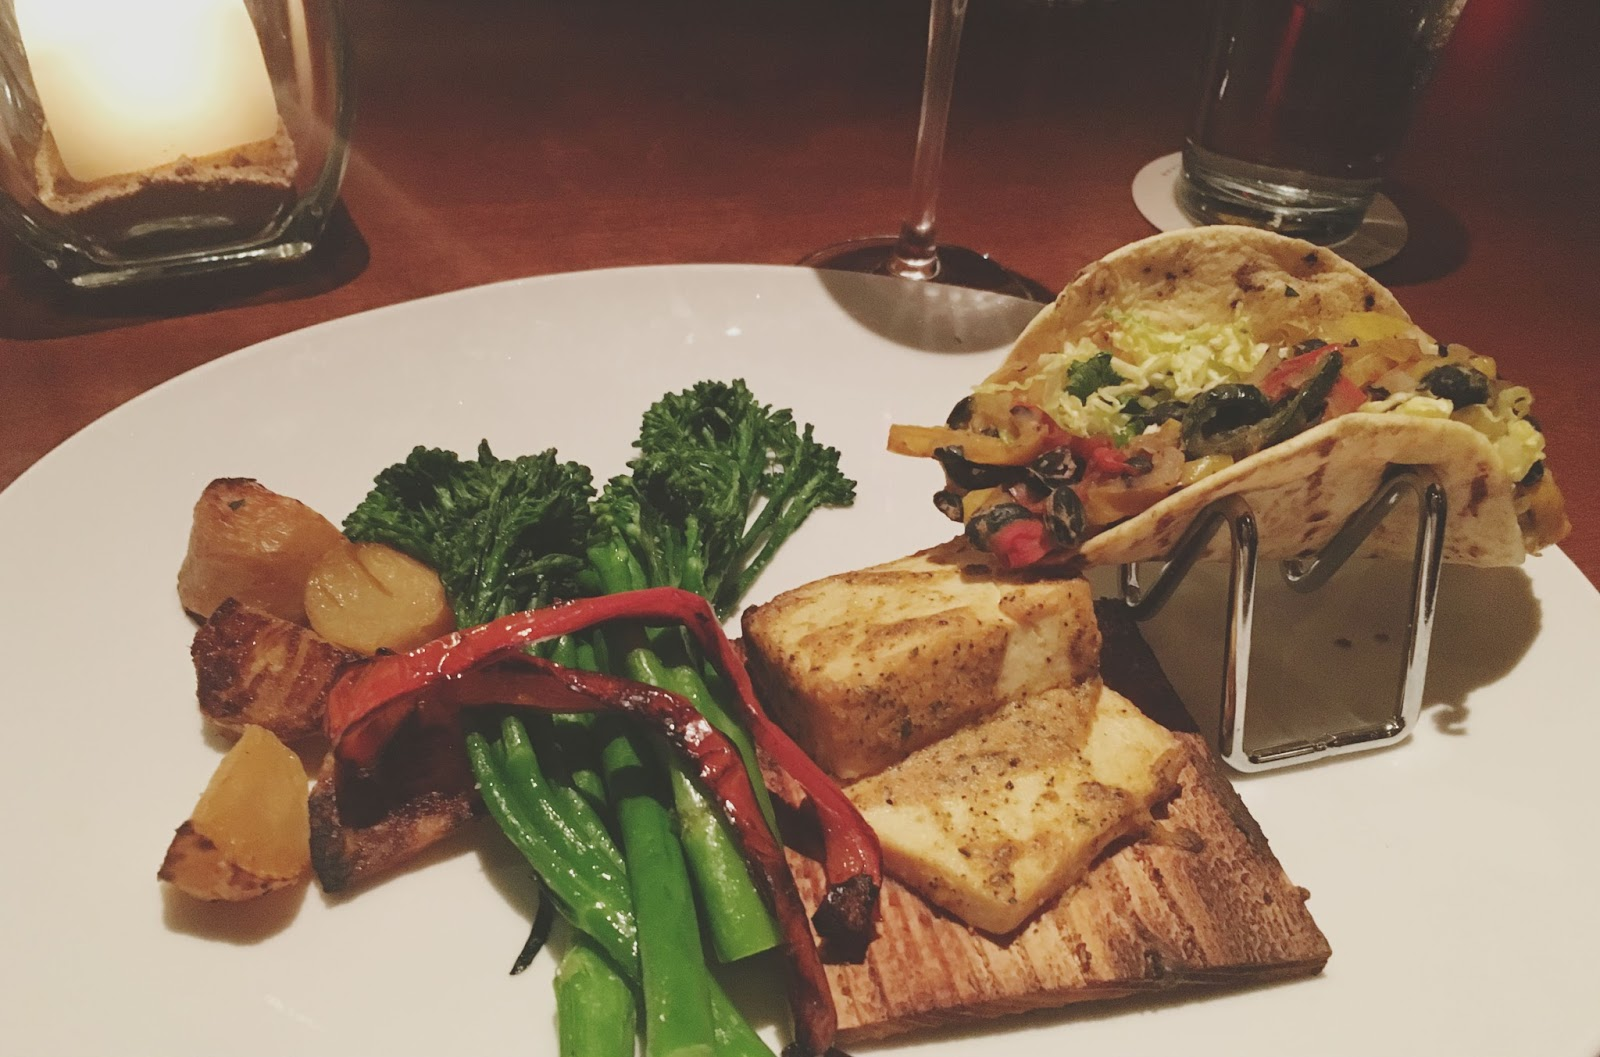 vegan tasting platter at Seasons 52, a restaurant in Houston, Texas